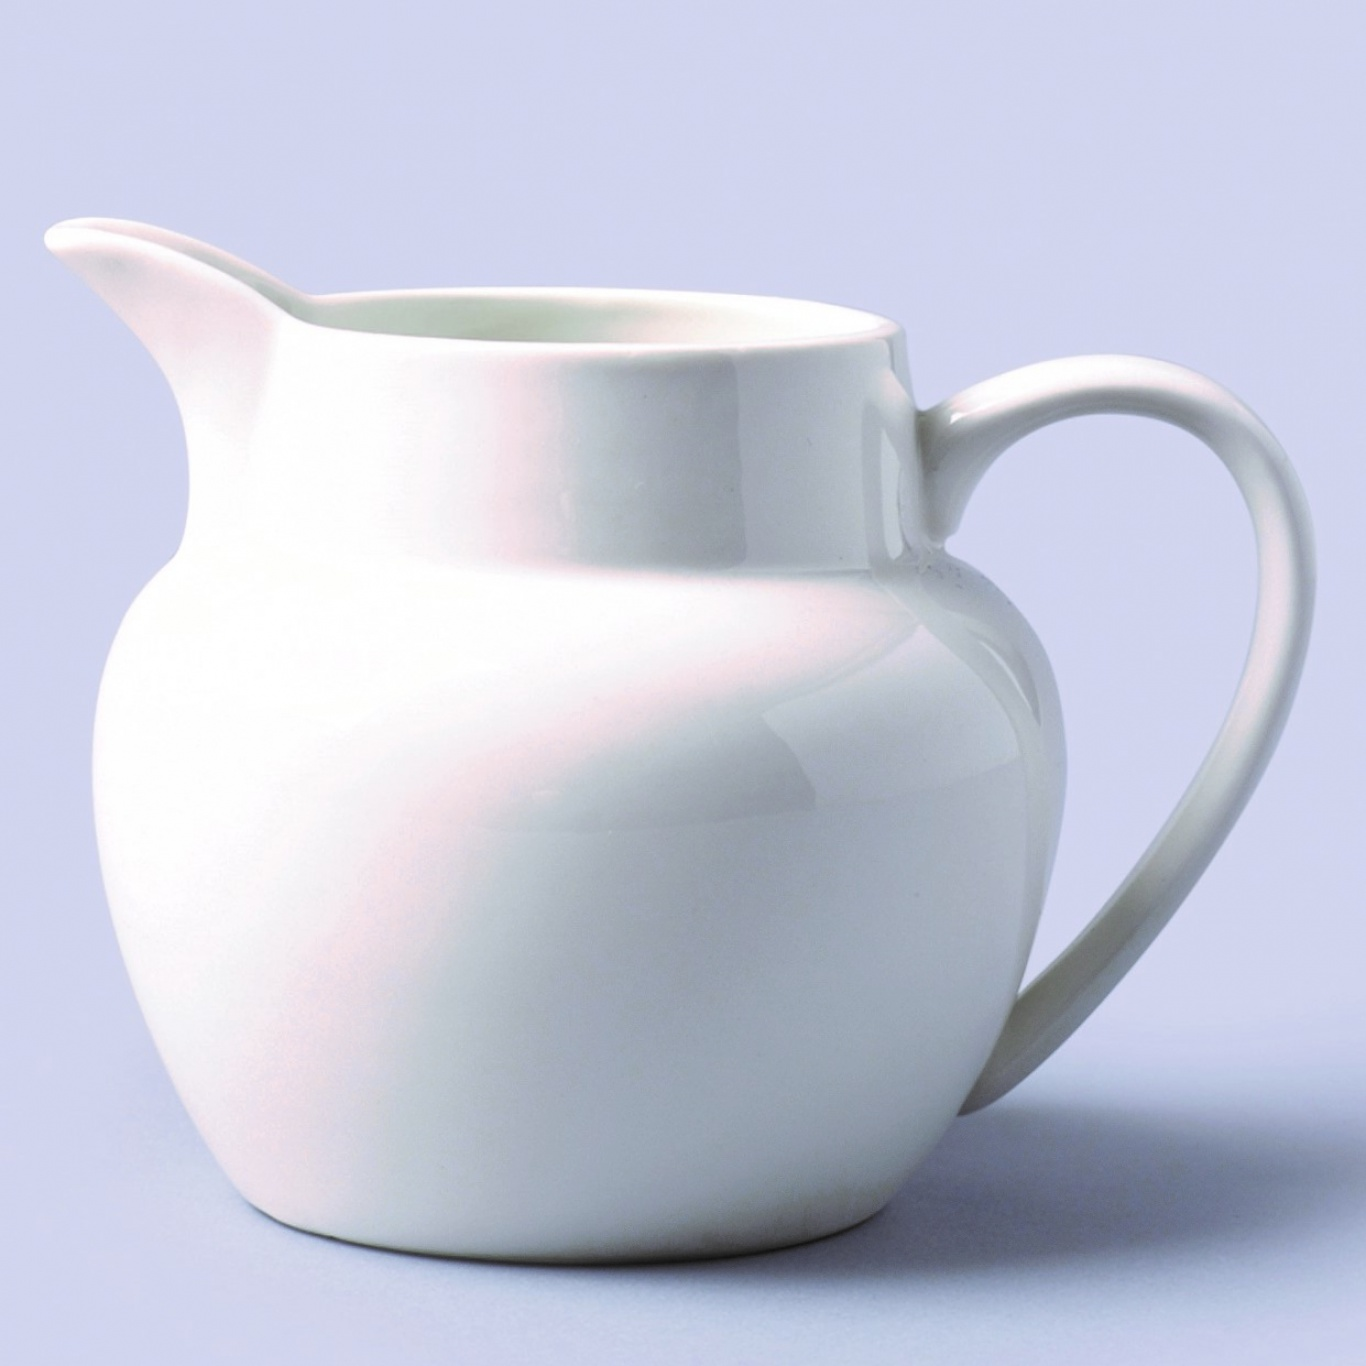 Image of Traditional Bellied Milk Jug 1 Pint